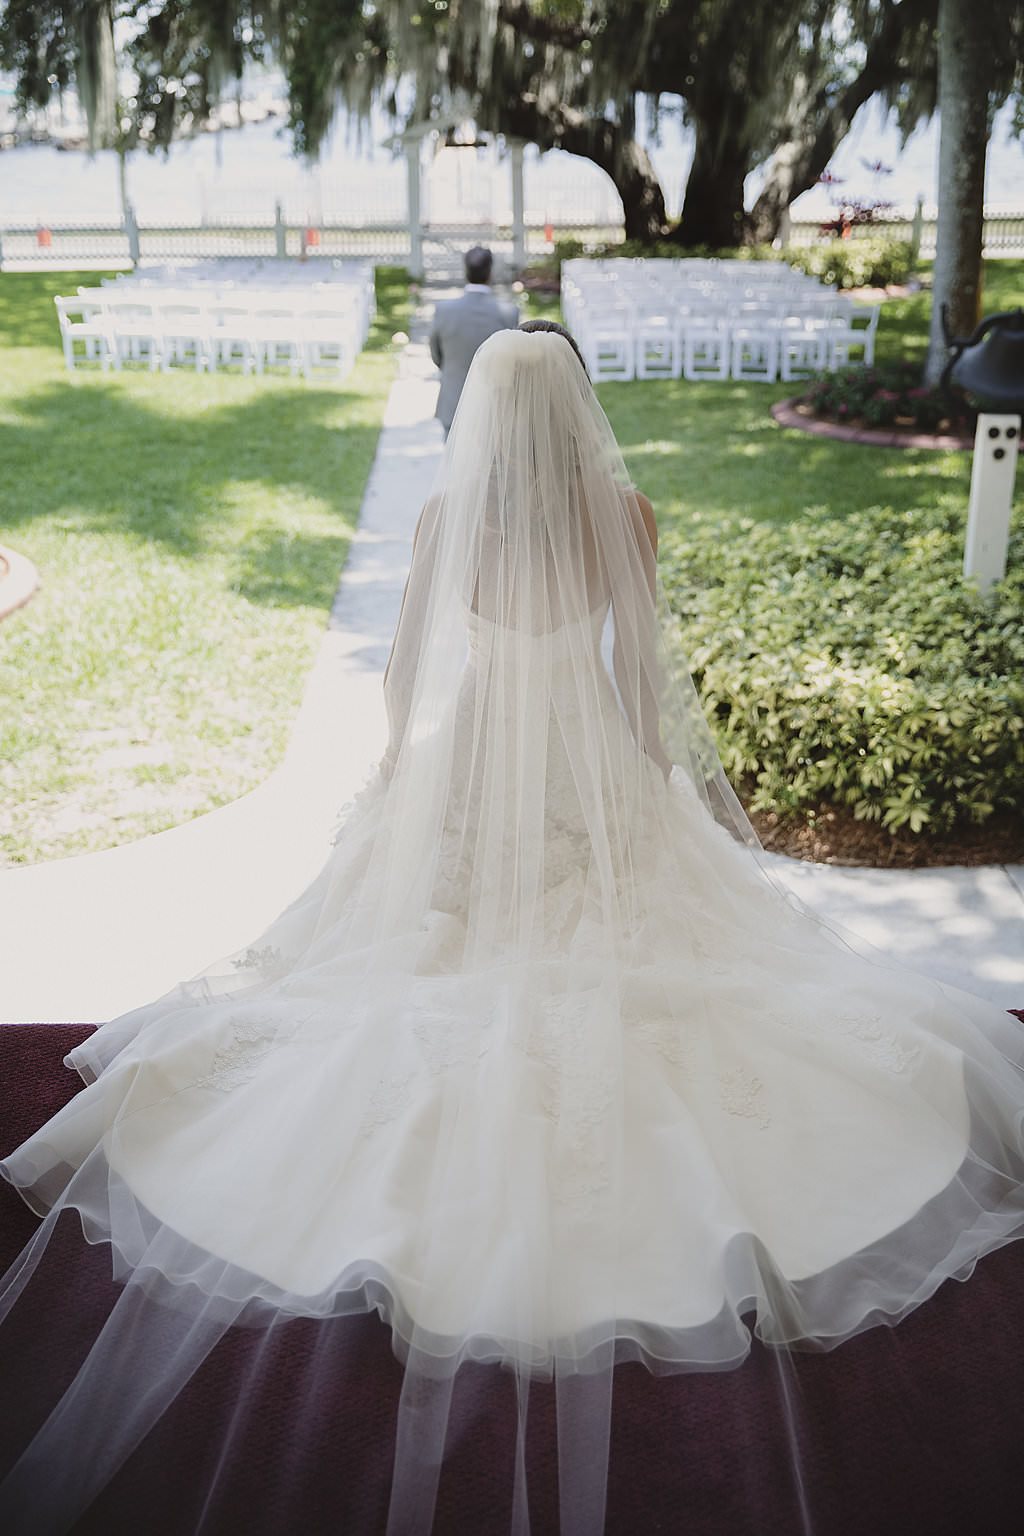 Outdoor Garden Wedding Ceremony Bridal Portrait with Cathedral Train Wedding Dress and Long Veil | Florida Waterfront Wedding Venue Palmetto Riverside Bed and Breakfast